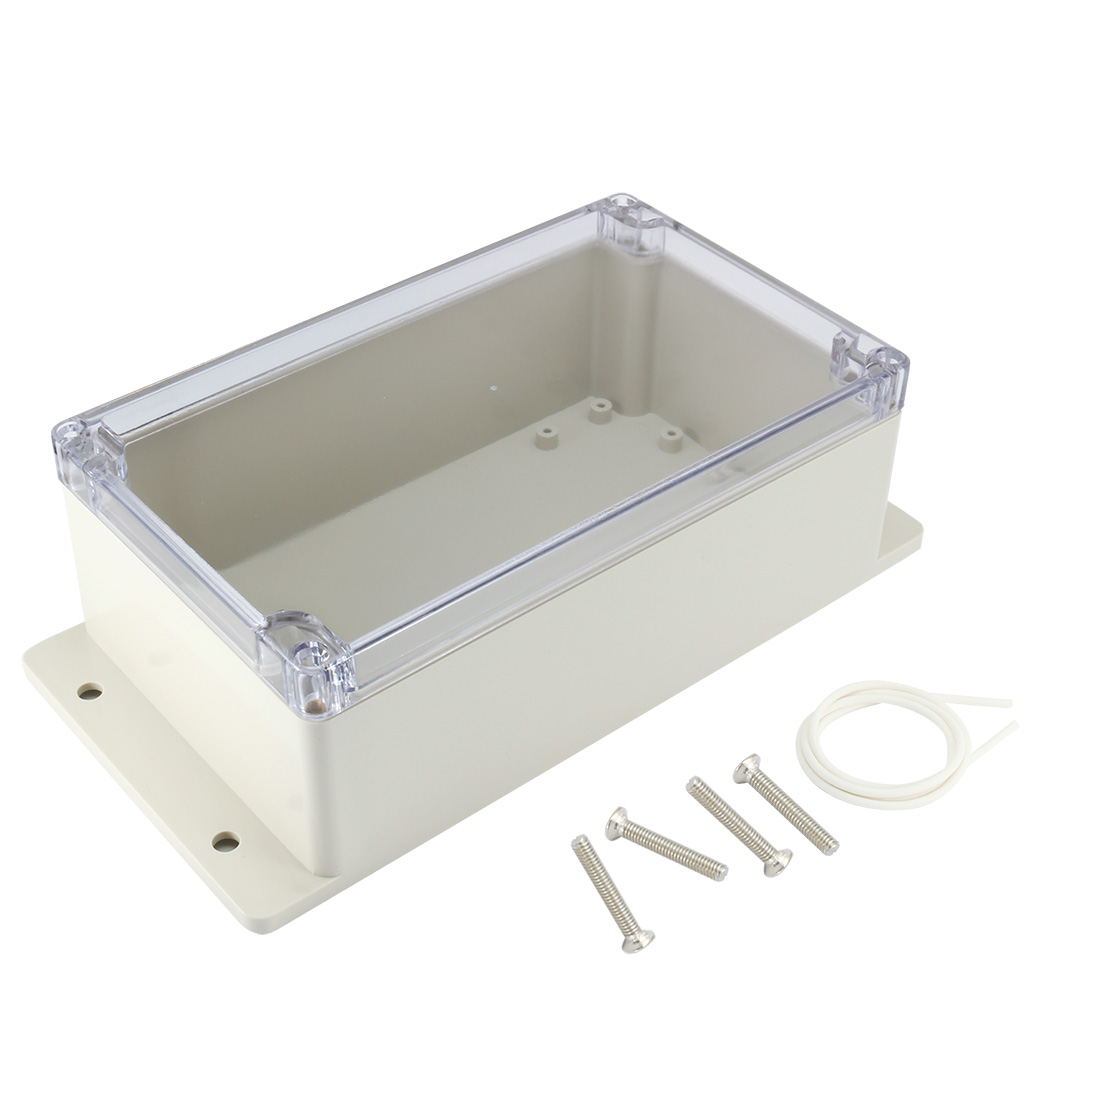 """7.9""""x4.7""""x2.9""""ABS Junction Box Universal Project Enclosure w PC Cover"""